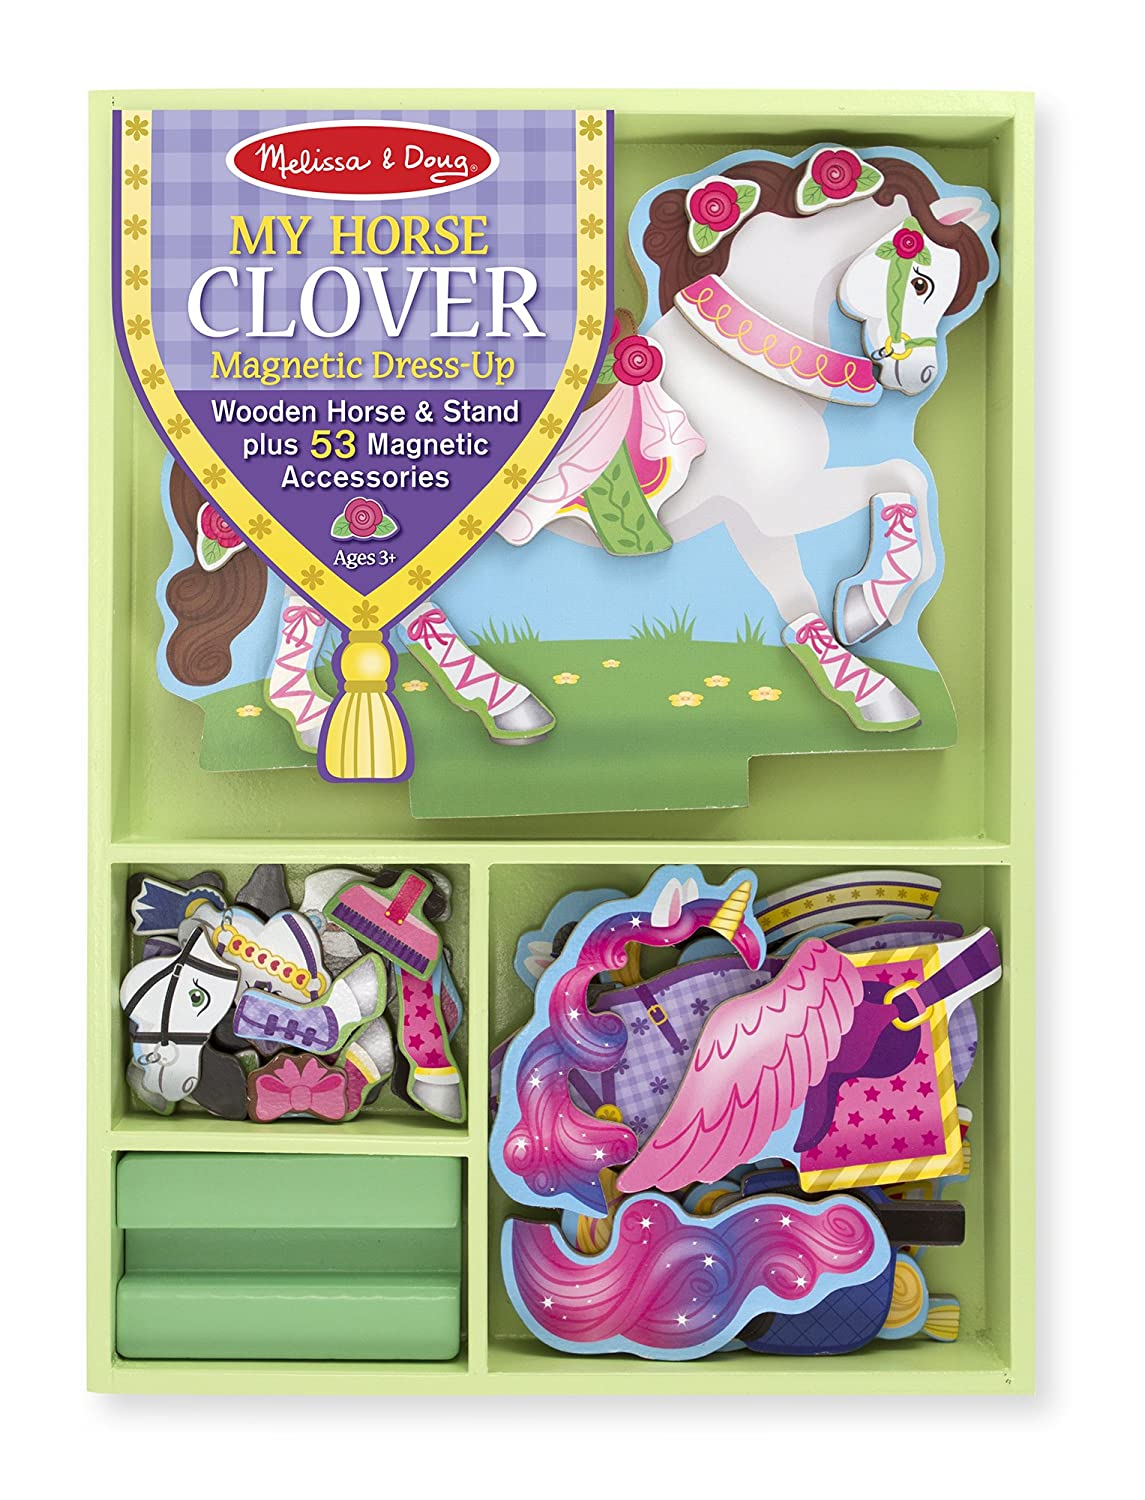 My Horse Clover Magnetic Dress Up: My Horse Clover Magnetic Dress Up Melissa & Doug 8591